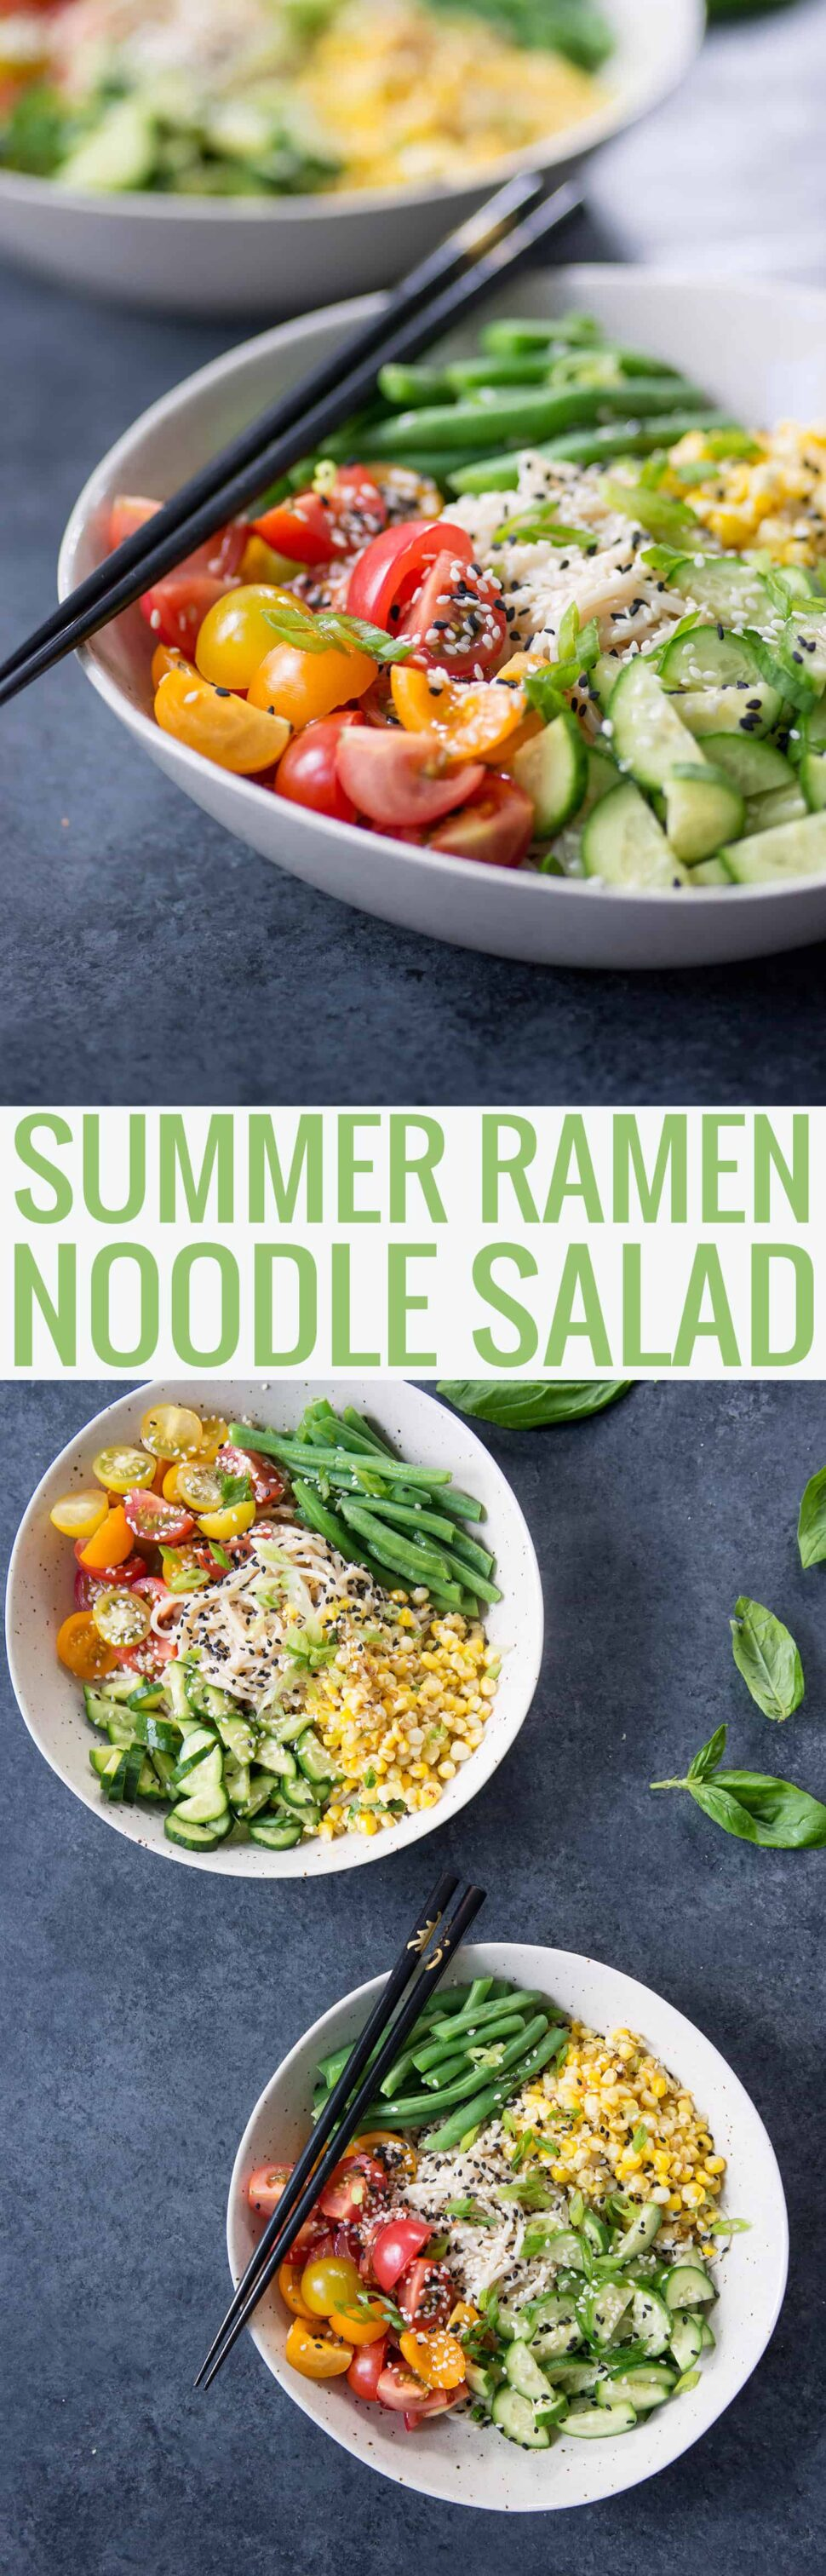 Summer Ramen Noodle Salad! You've gotta try this cold salad filled with ramen noodles, green beans, tomatoes, cucumbers, corn and a ponzu sauce. Vegan   www.delishknowledge.com